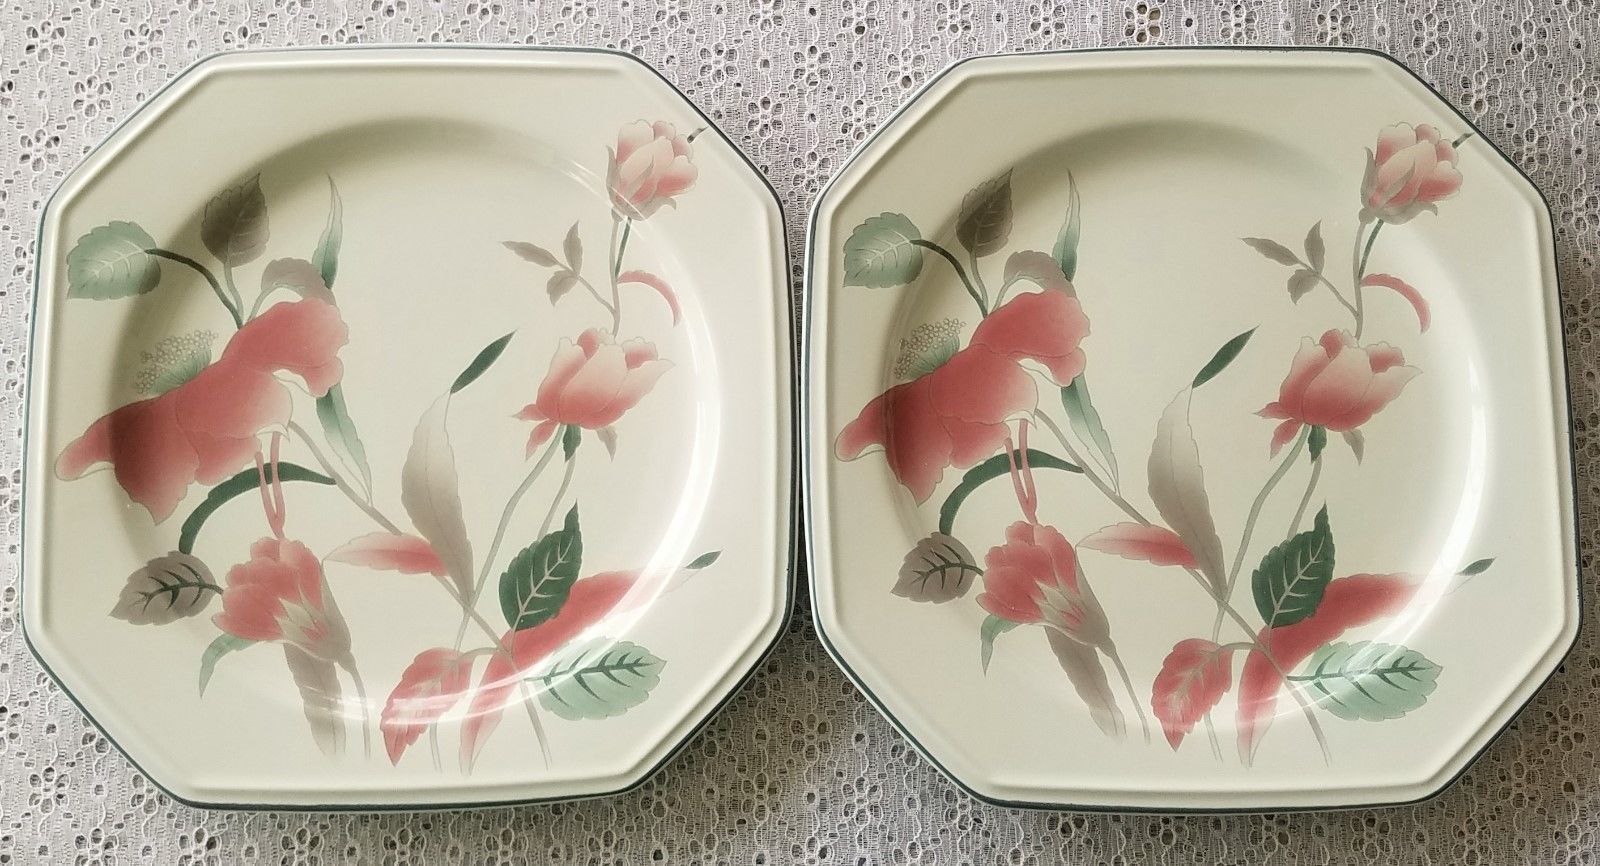 Mikasa continental silk flowers f3003 set of and similar items mikasa continental silk flowers f3003 set of 2 dinner plates mightylinksfo